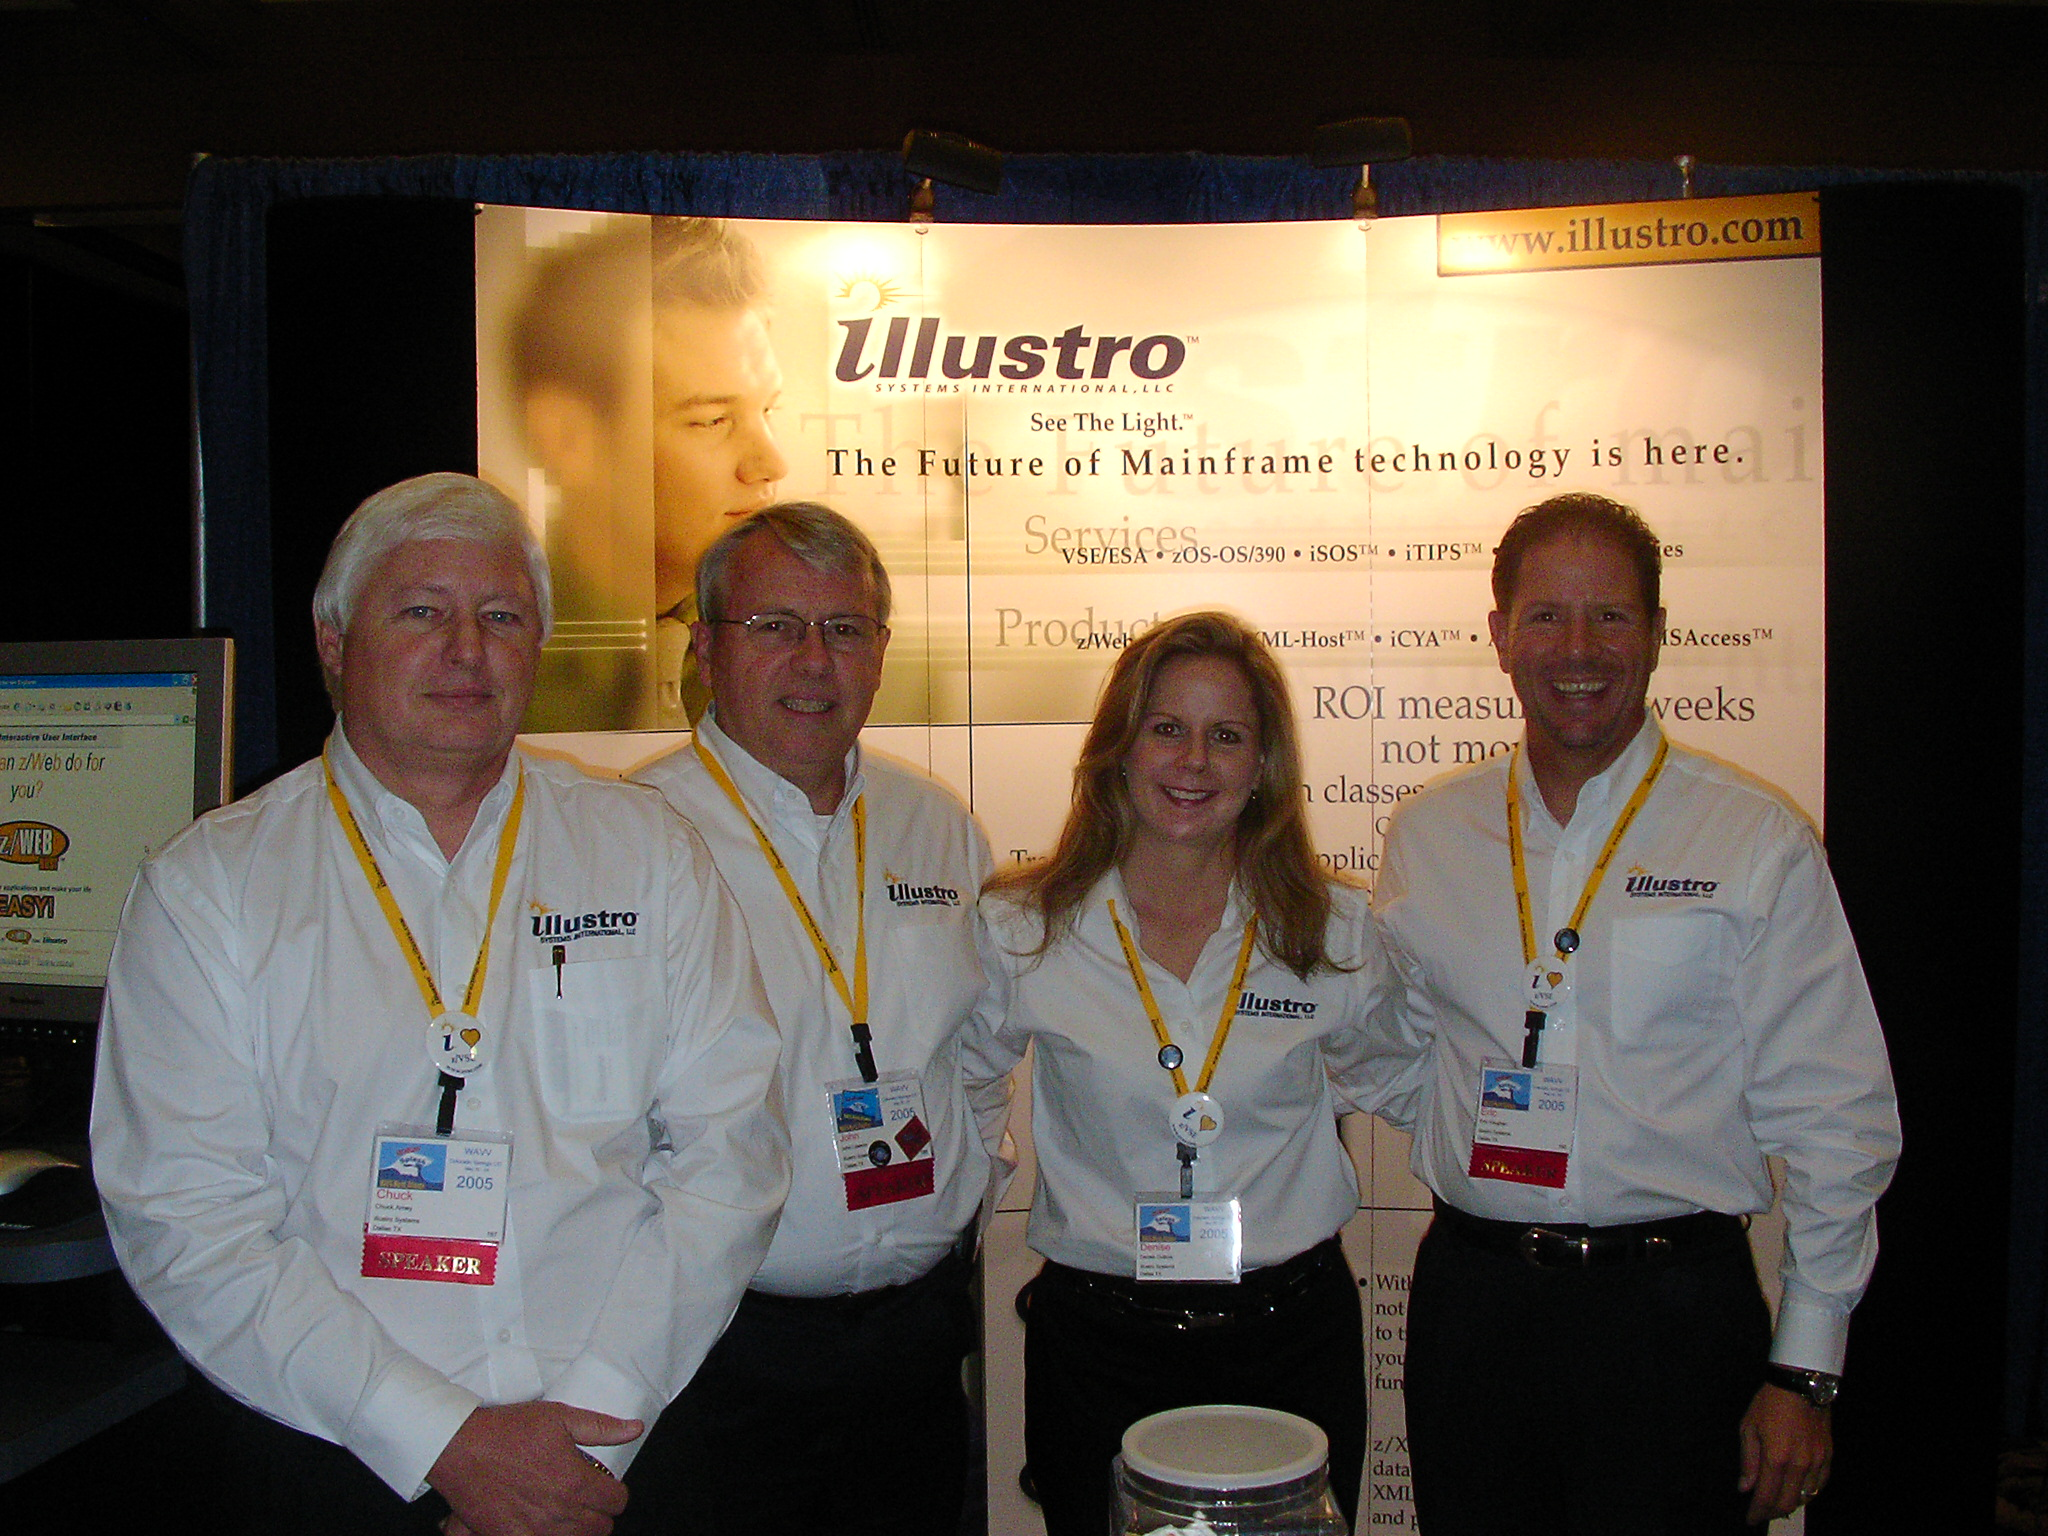 The illustro Expo team: Chuck Arney, John Lawson, Denise DuBois, and Eric Vaughan. Description	 None